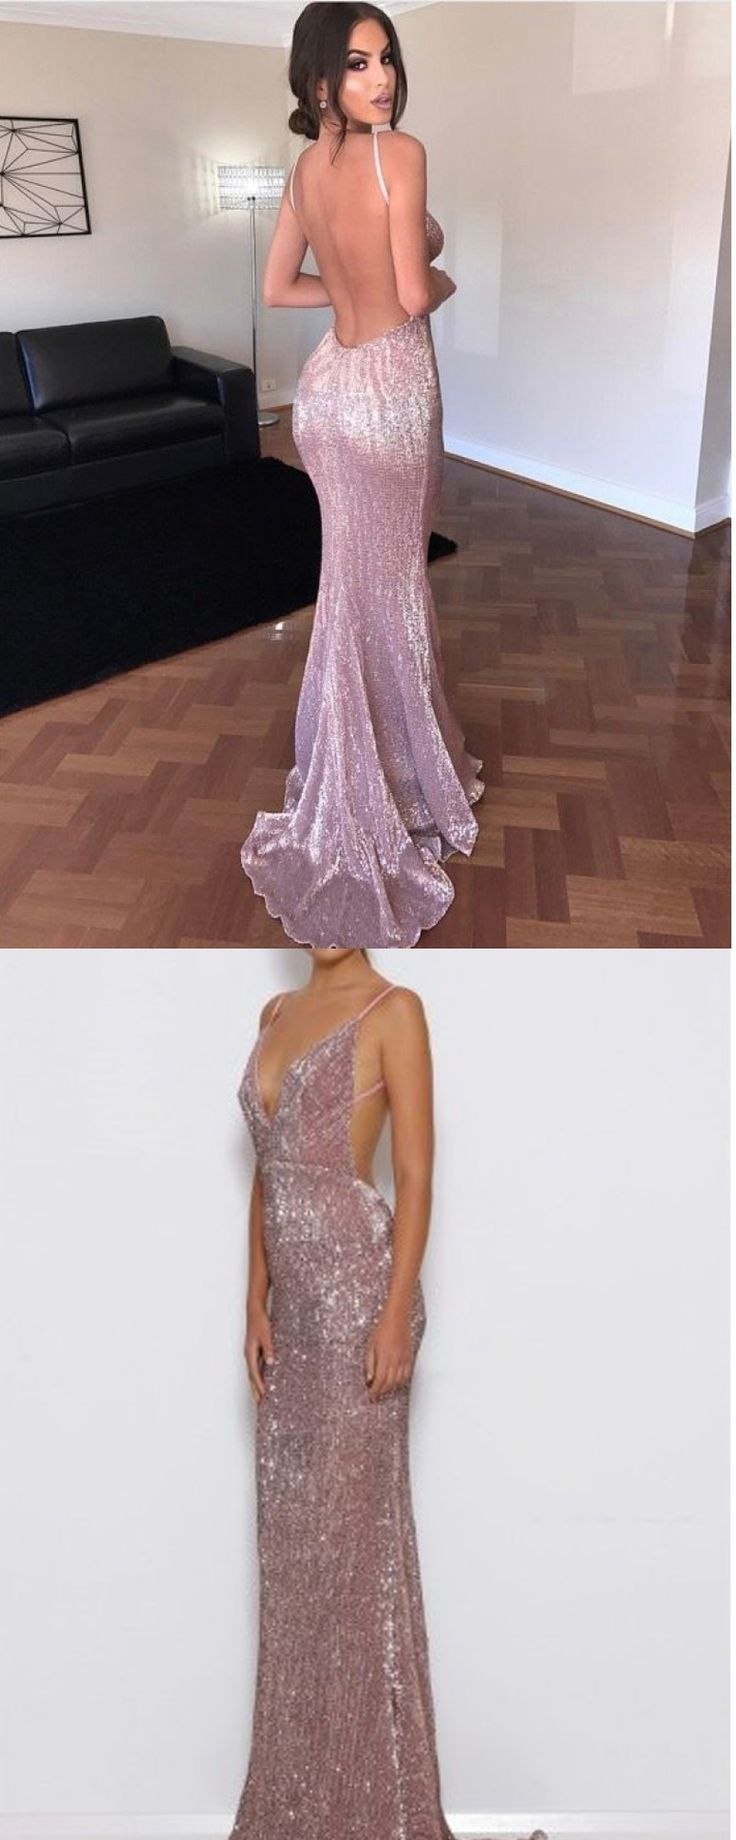 Spaghetti Straps Backless Sequined Sweep Train Prom Dress, Open Back Prom Dress, Sexy Prom Dress, Sexy Woman Evening Dress, Sequins Prom Dress, Long Formal Dress, Party Dress,Prom Dresses